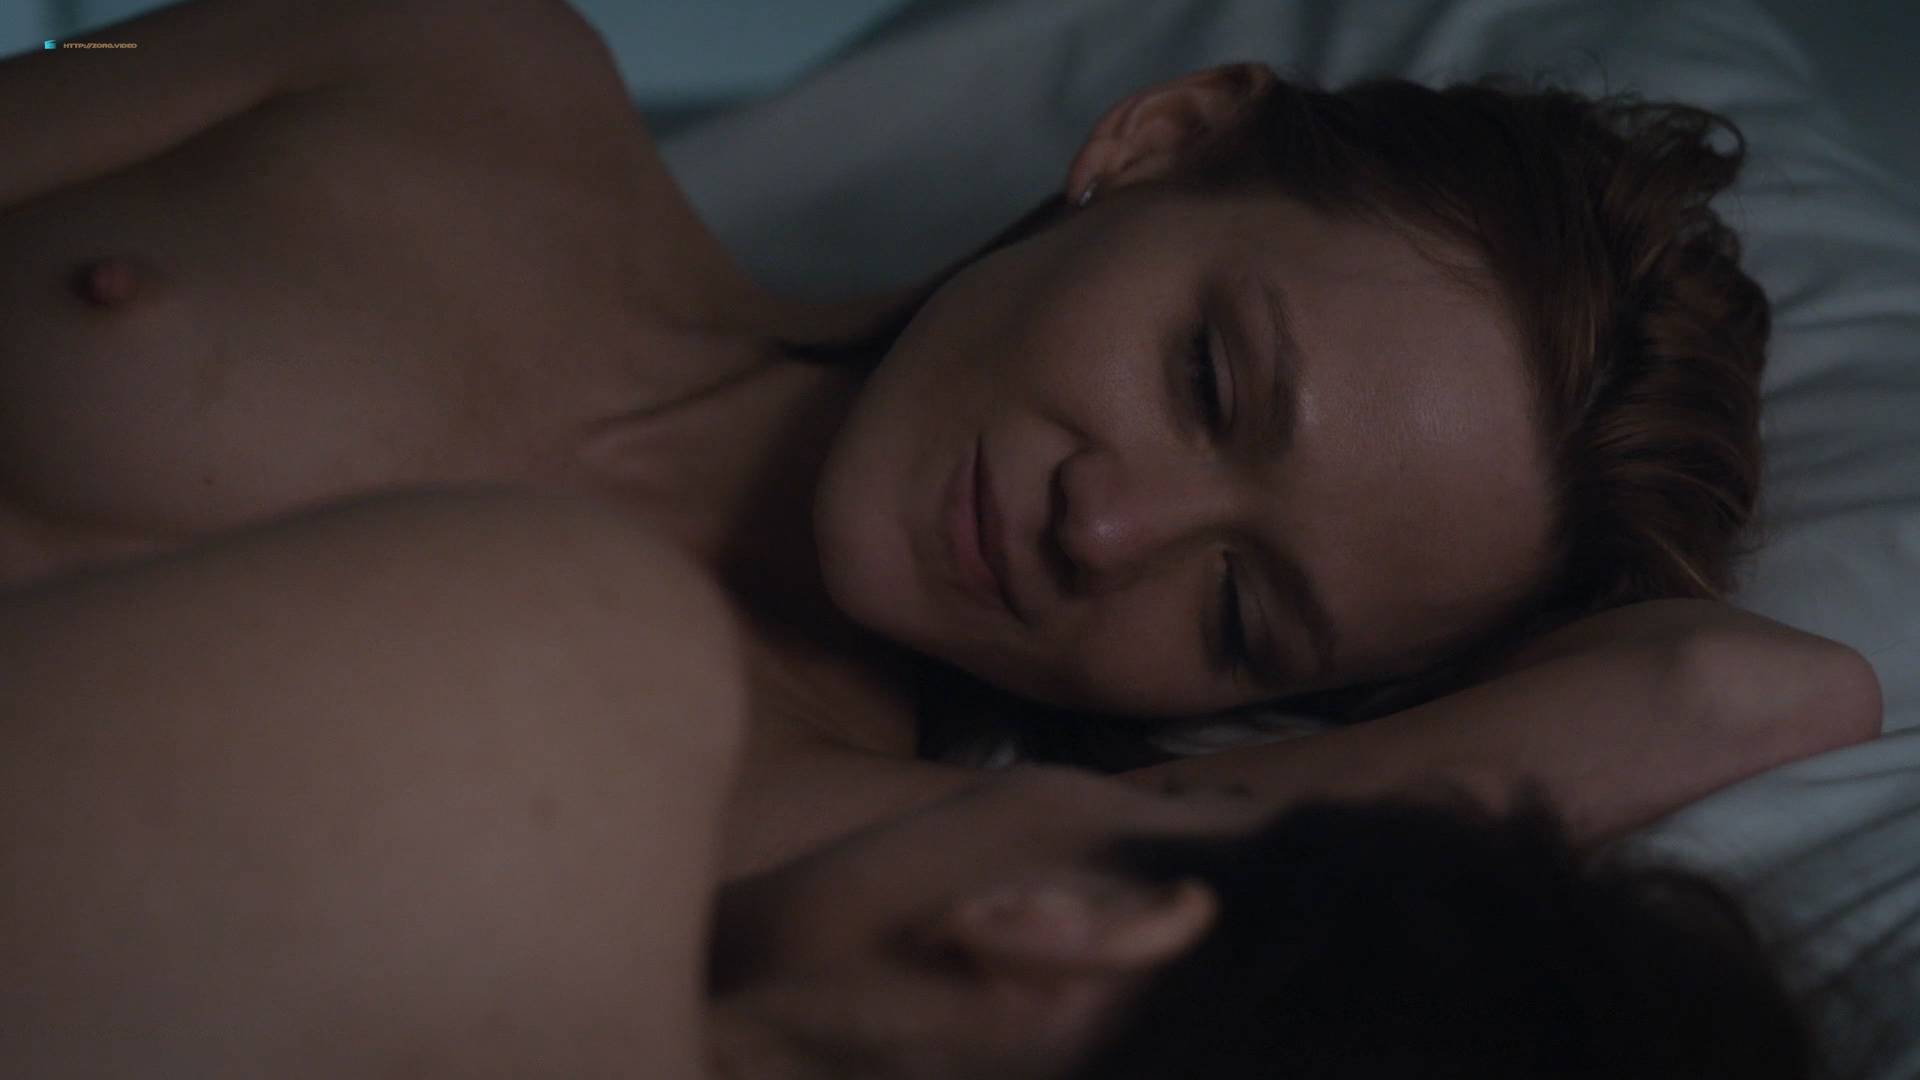 Anna Friel nude and lesbian sex with Louisa Krause - The Girlfriend Experience (2017) s2e3 HD 1080p Web (2)